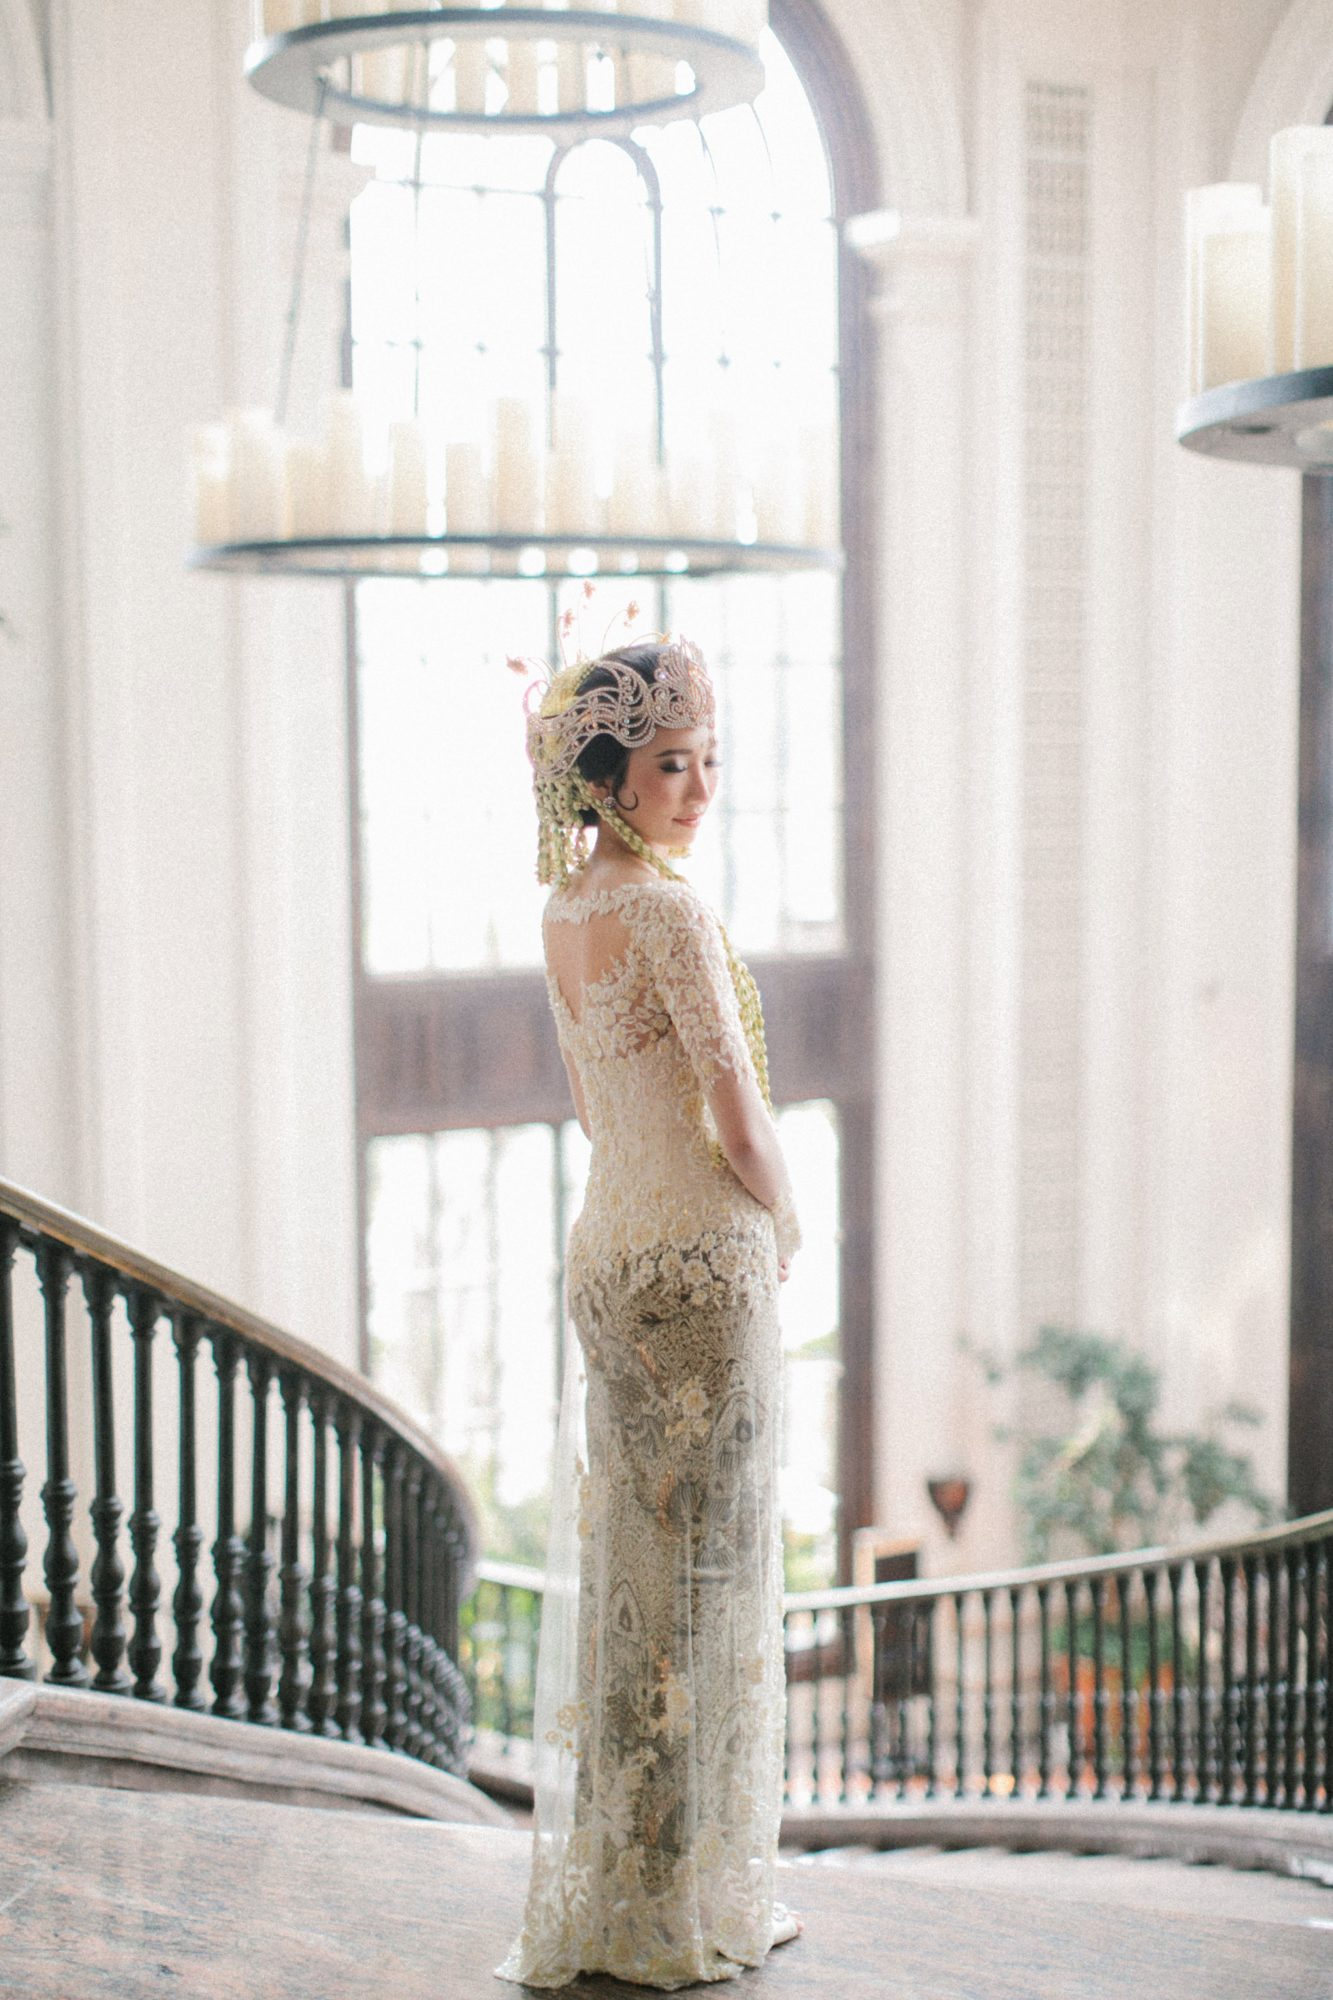 wedding bride two part gown pose at stairwell